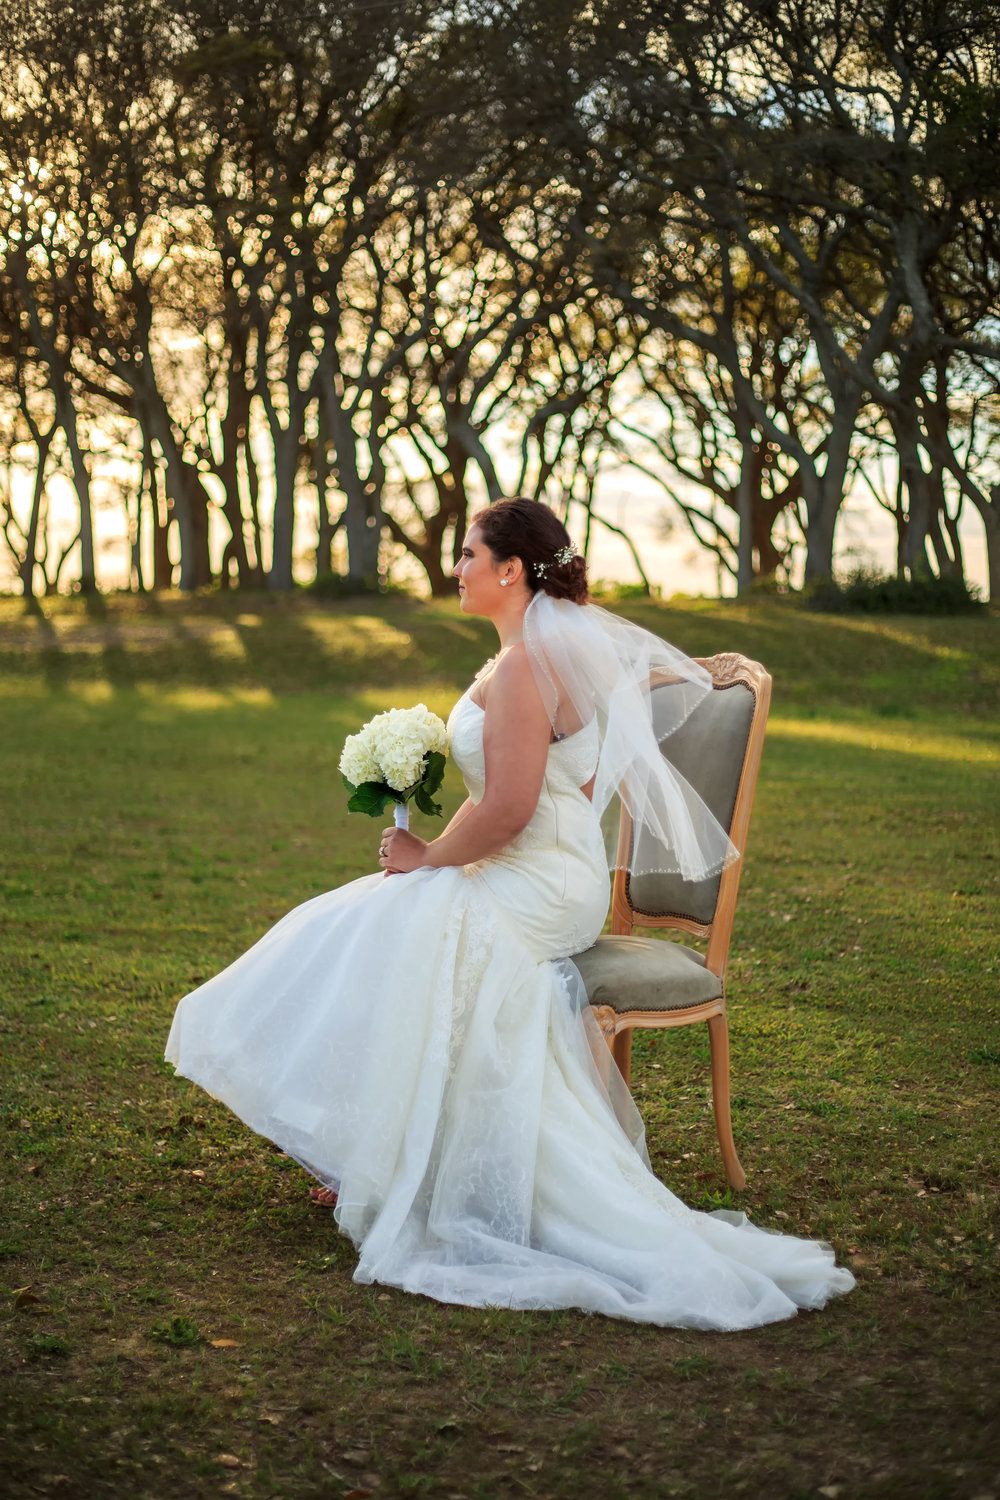 Fort-Fisher-Wedding-Bridal-Portrait-Tiffany-Abruzzo-Photography-3.jpg